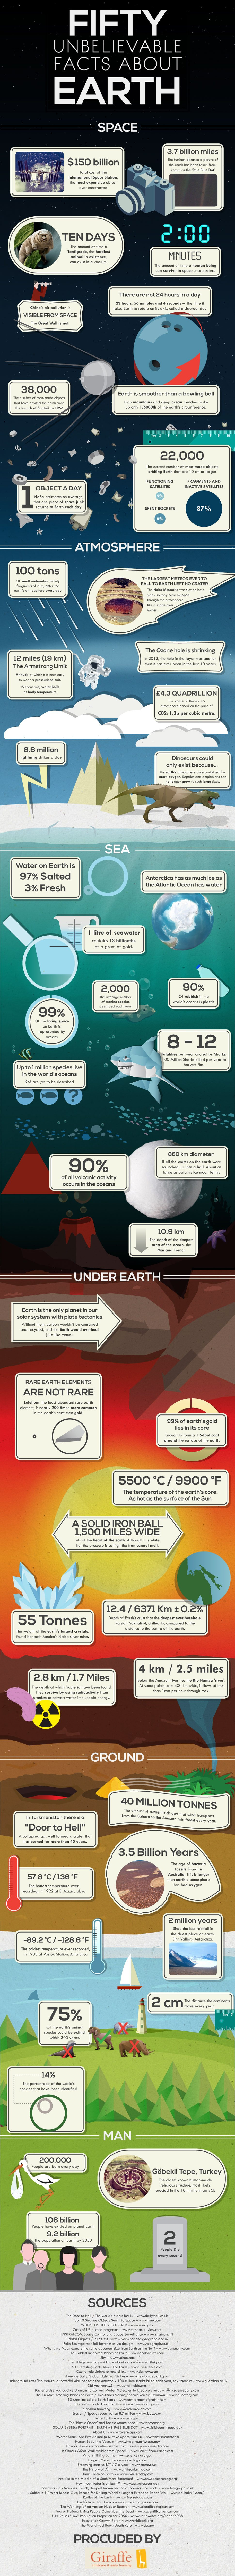 50 facts about earth